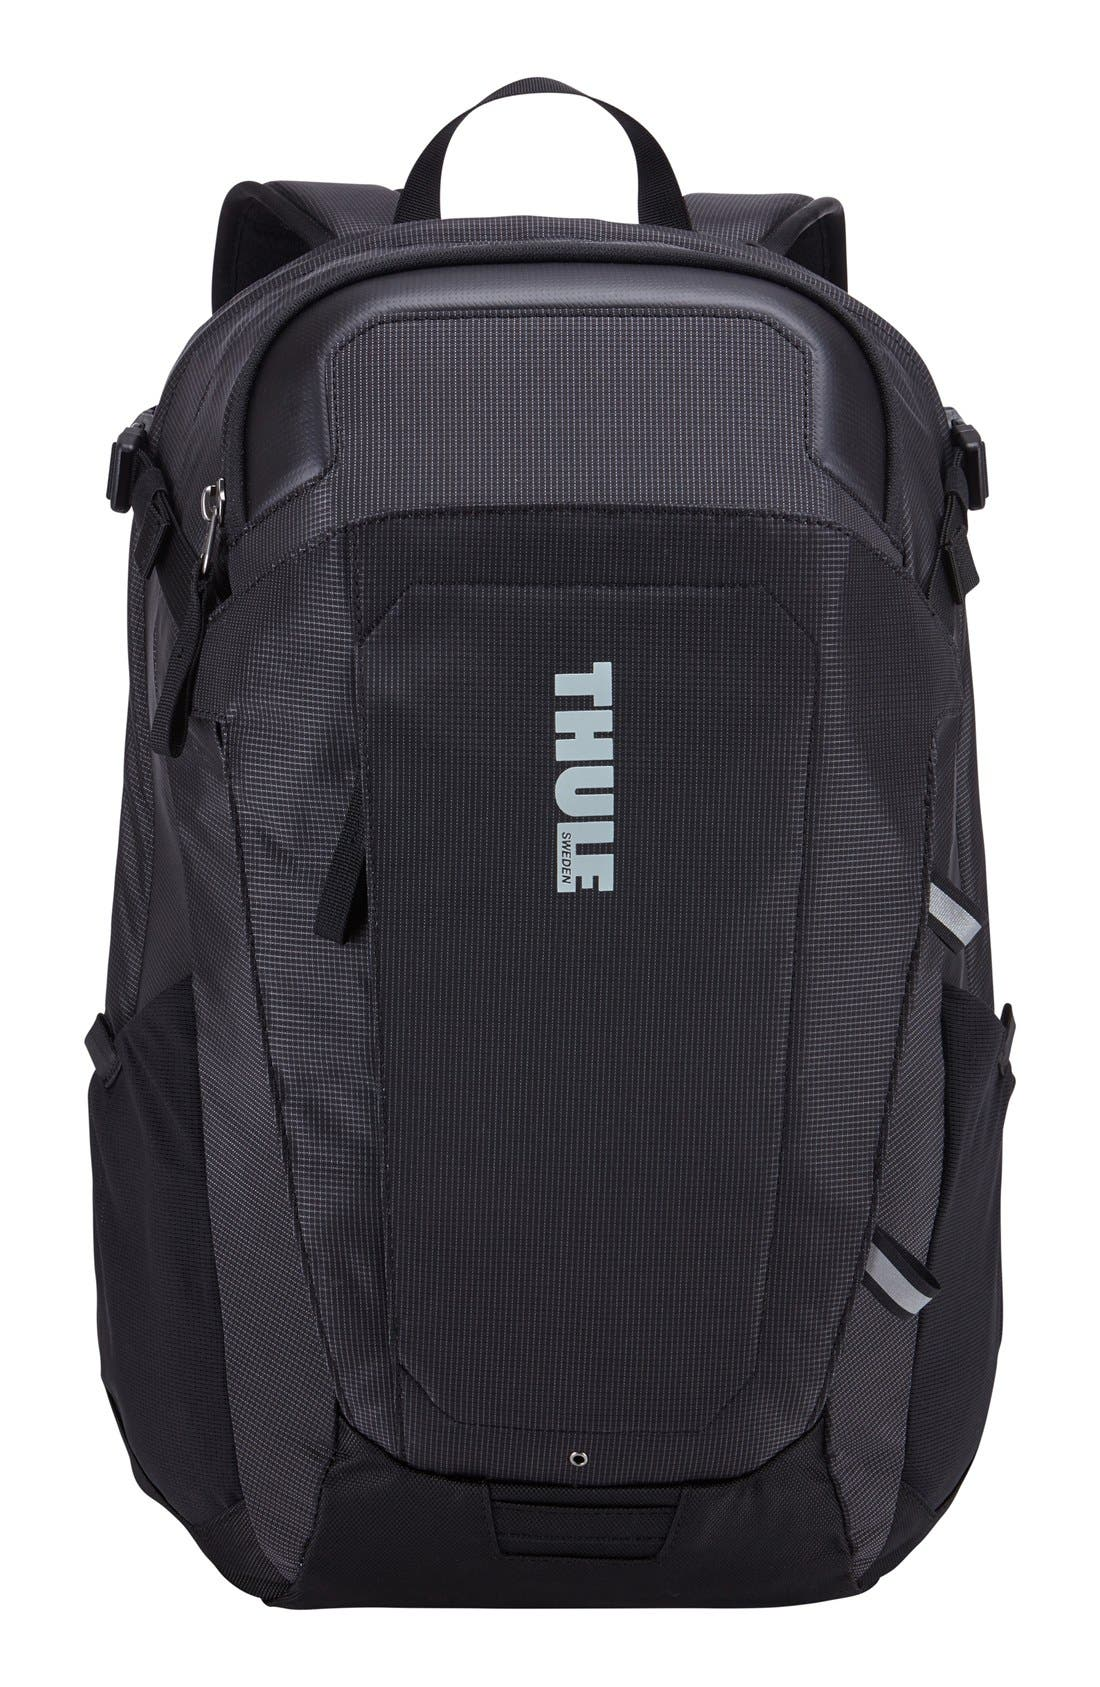 Alternate Image 1 Selected - Thule EnRoute Triumph 21-Liter Backpack